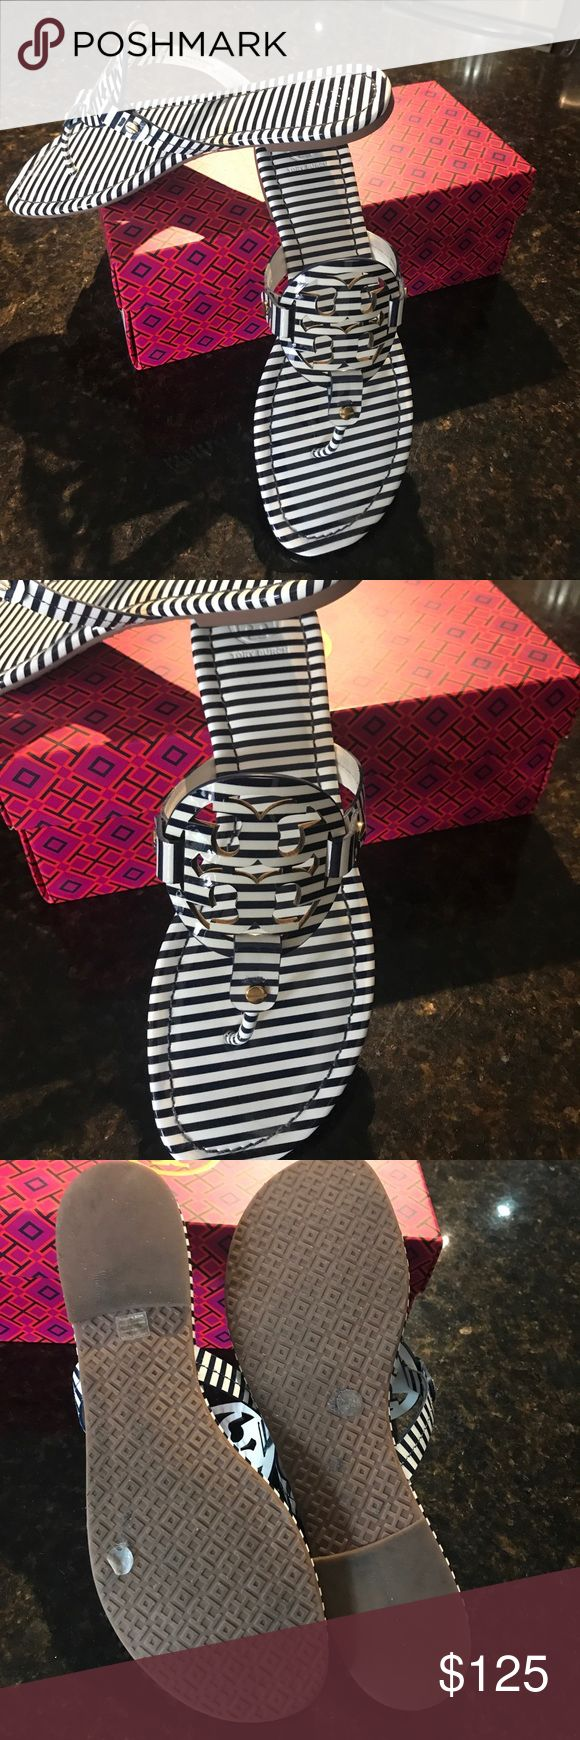 Miller sandals tory burch 👡👡 Miller Tory nautical sandal size 10 Tory Burch Shoes Sandals